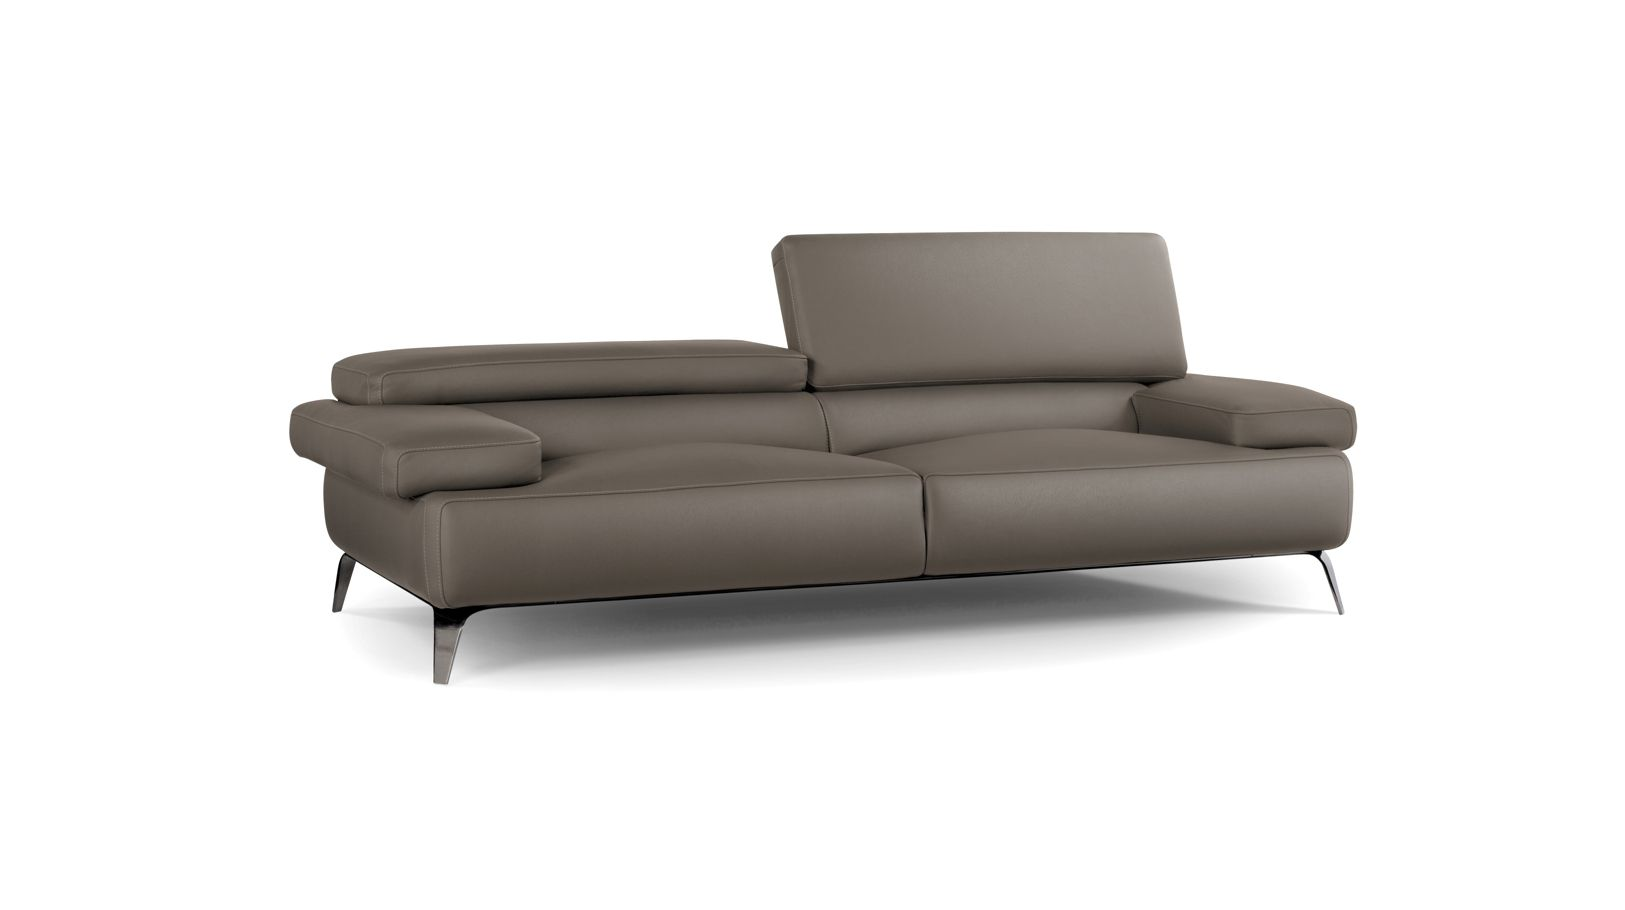 Grand canap 3 places graphite roche bobois - Canape cuir roche bobois 3 places ...